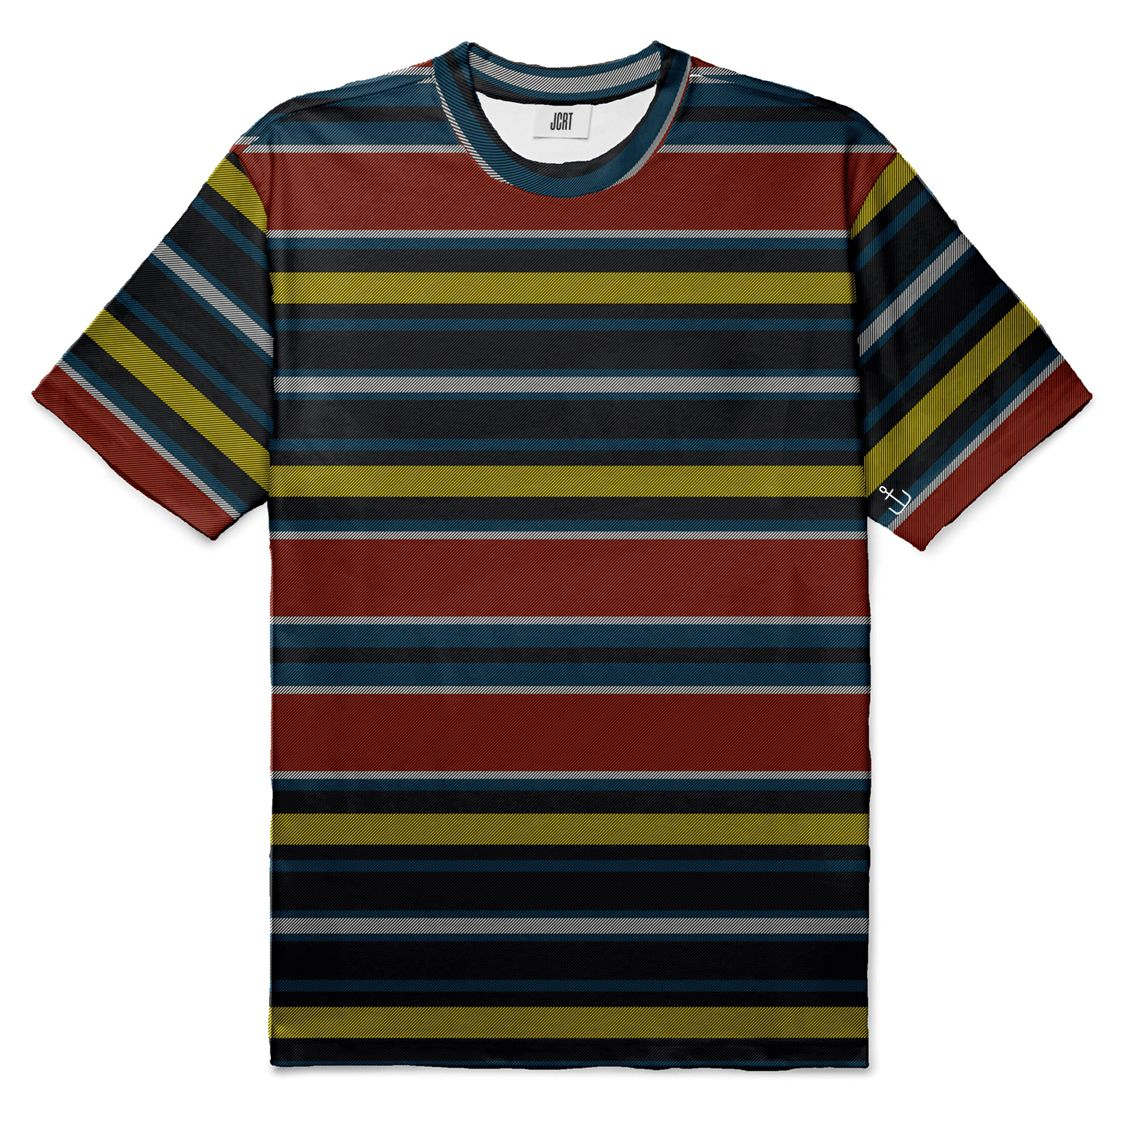 The Vintage Red and Yellow Stripe T-Shirt